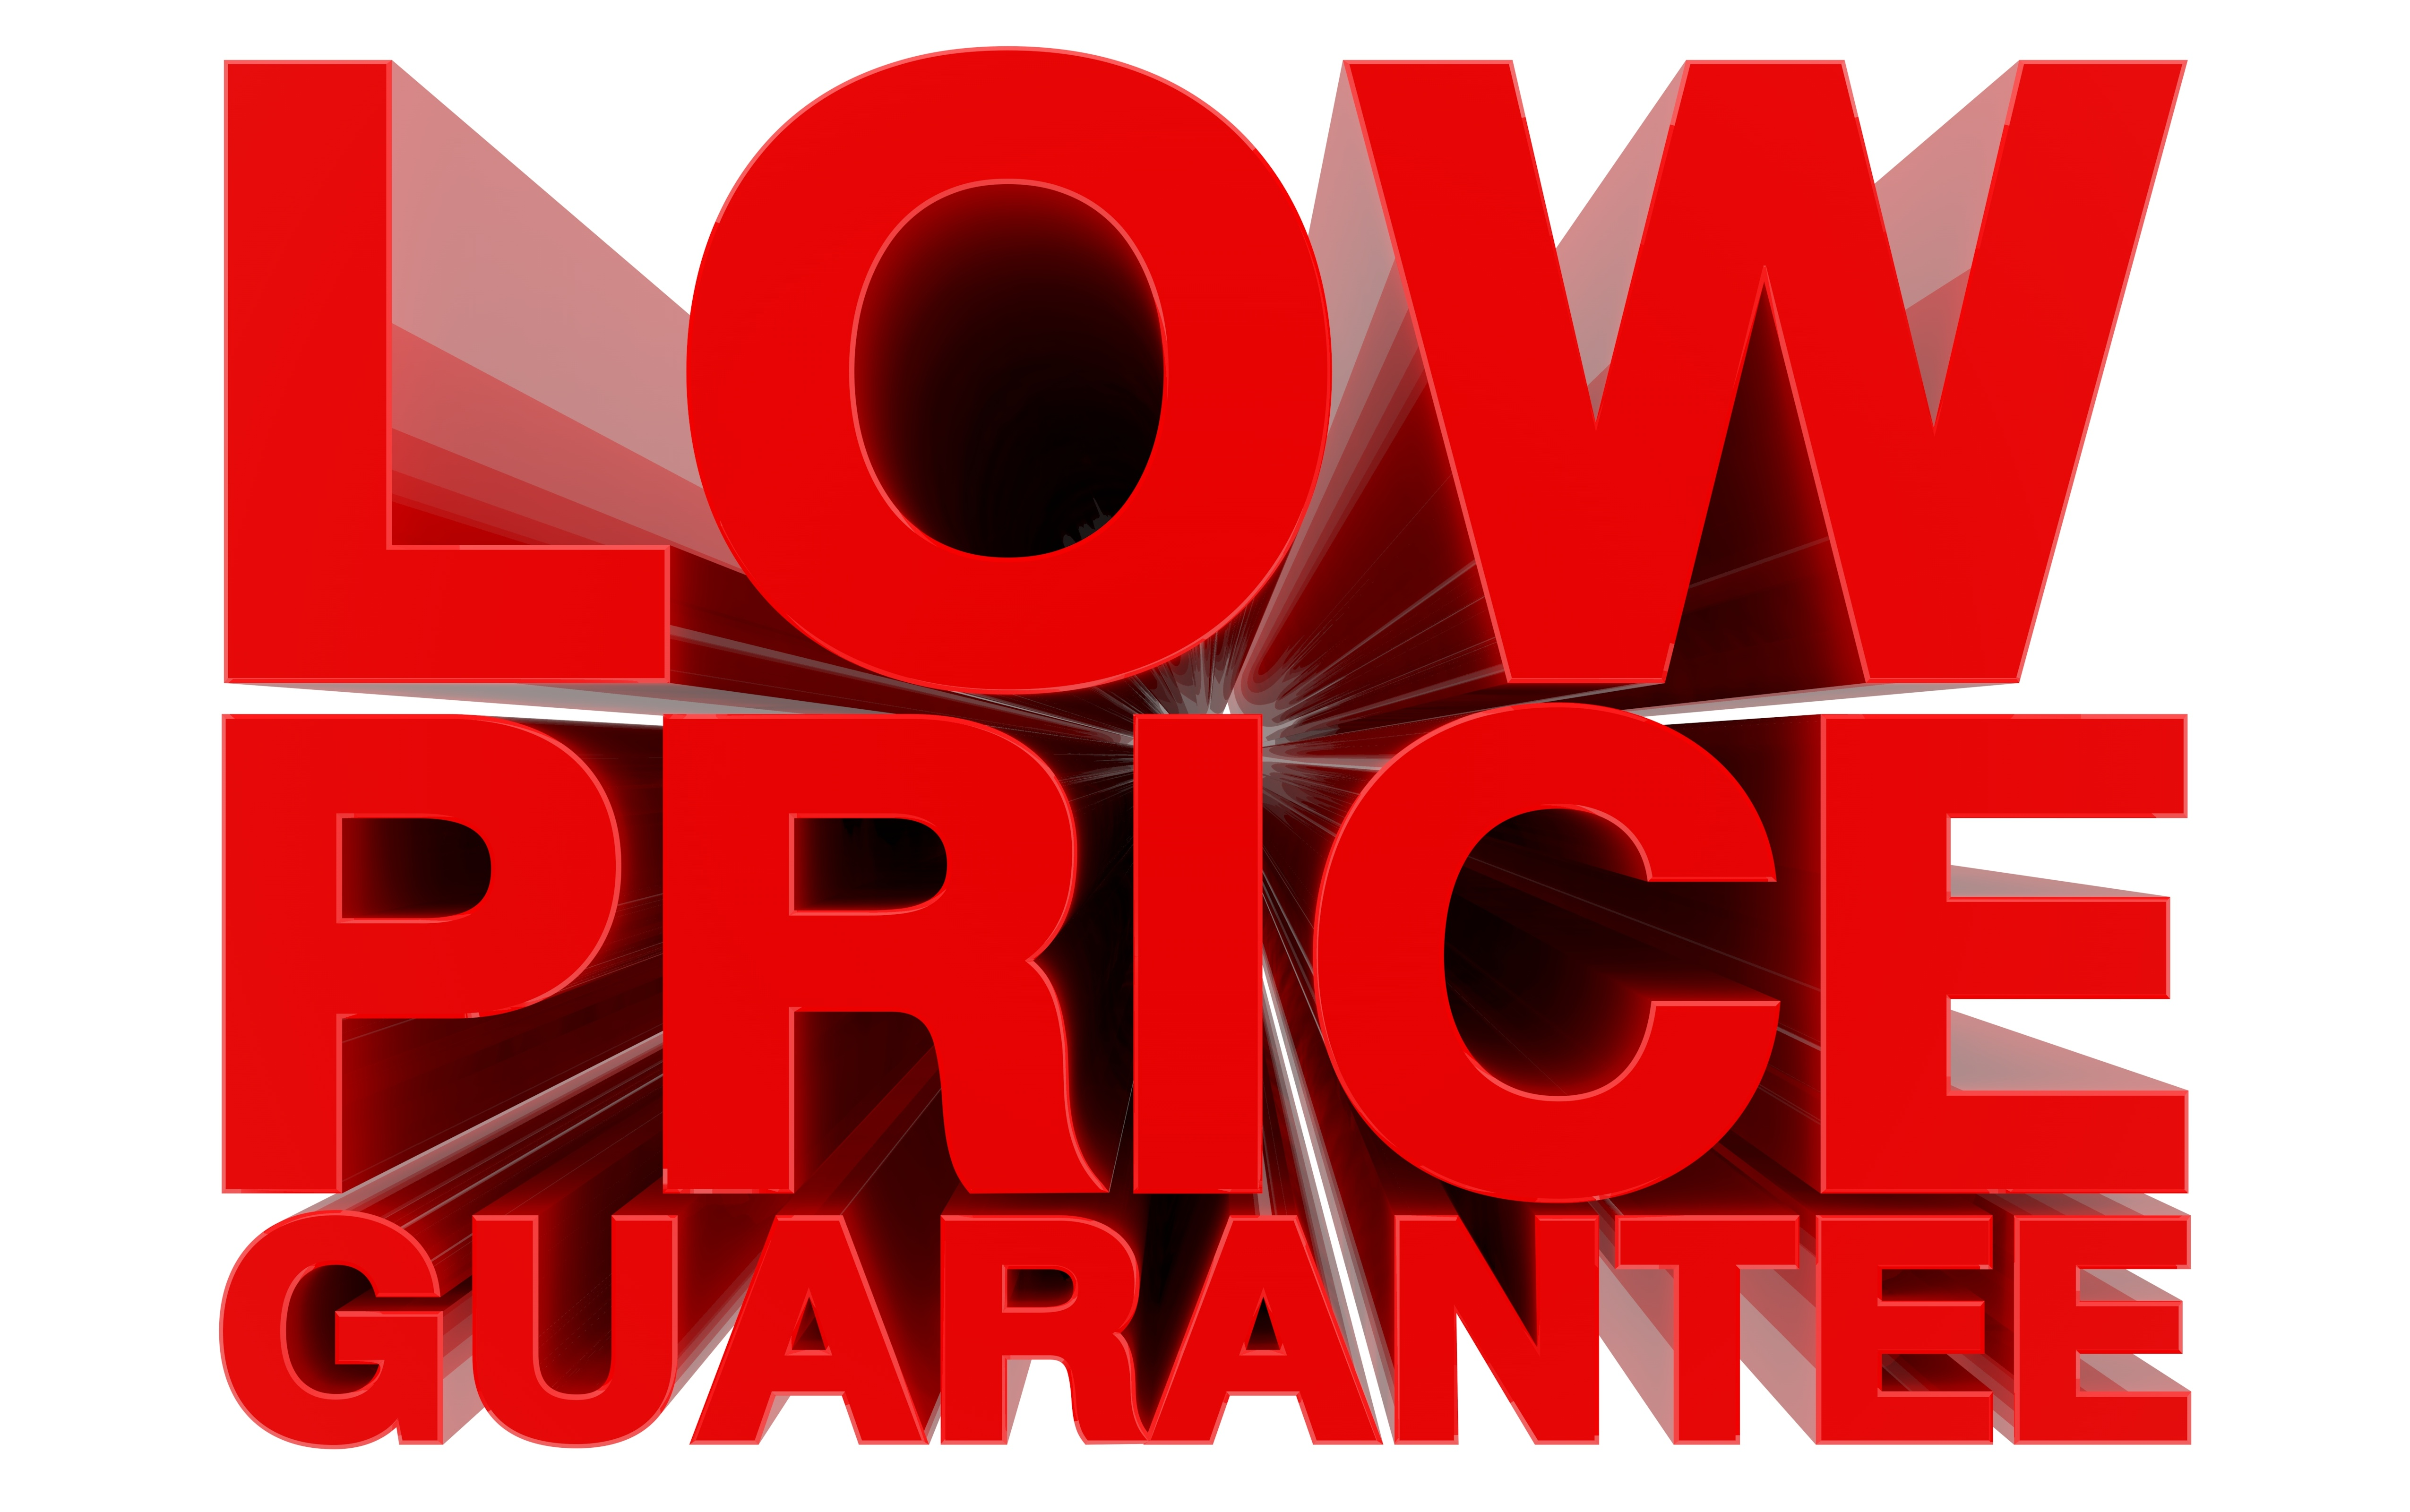 Lowest Freight Pricing Guaranteed